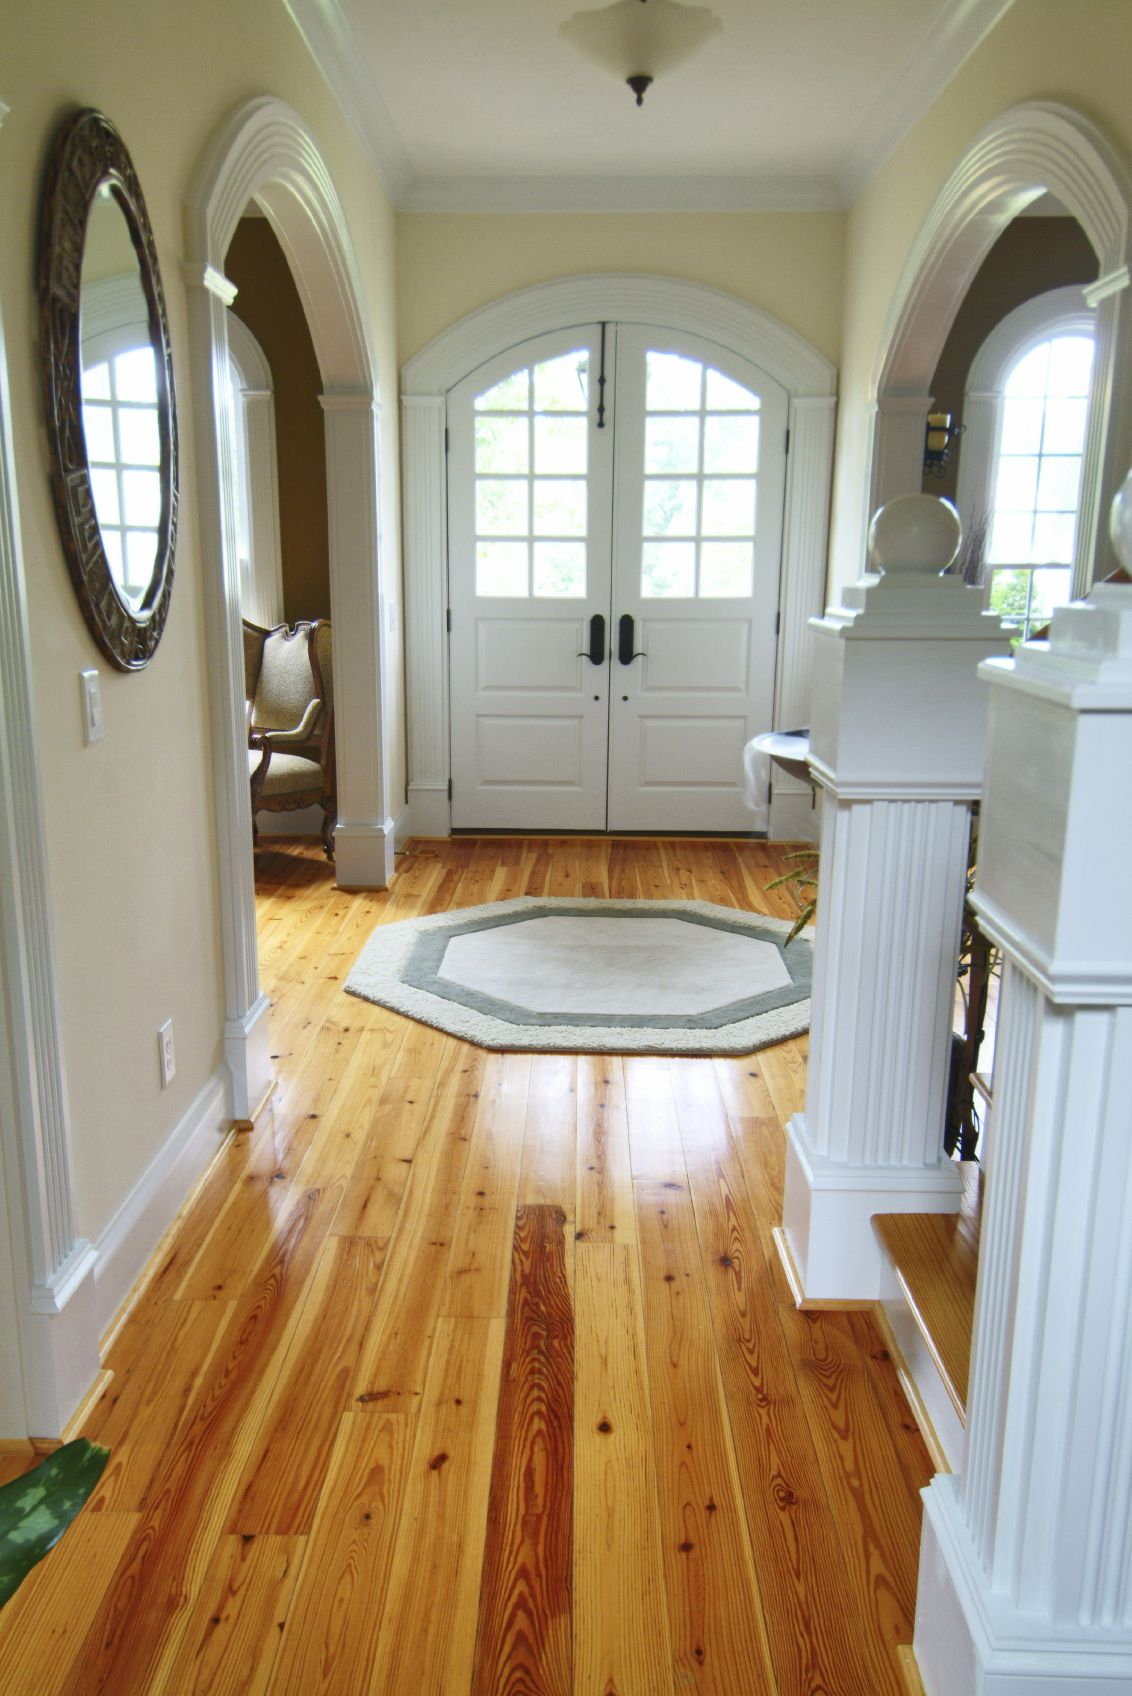 This Narrow Foyer Opens Immediately Into Two More Rooms On The Left And Right Of Door White Wood Staircase Leading Up To Second Floor Comes